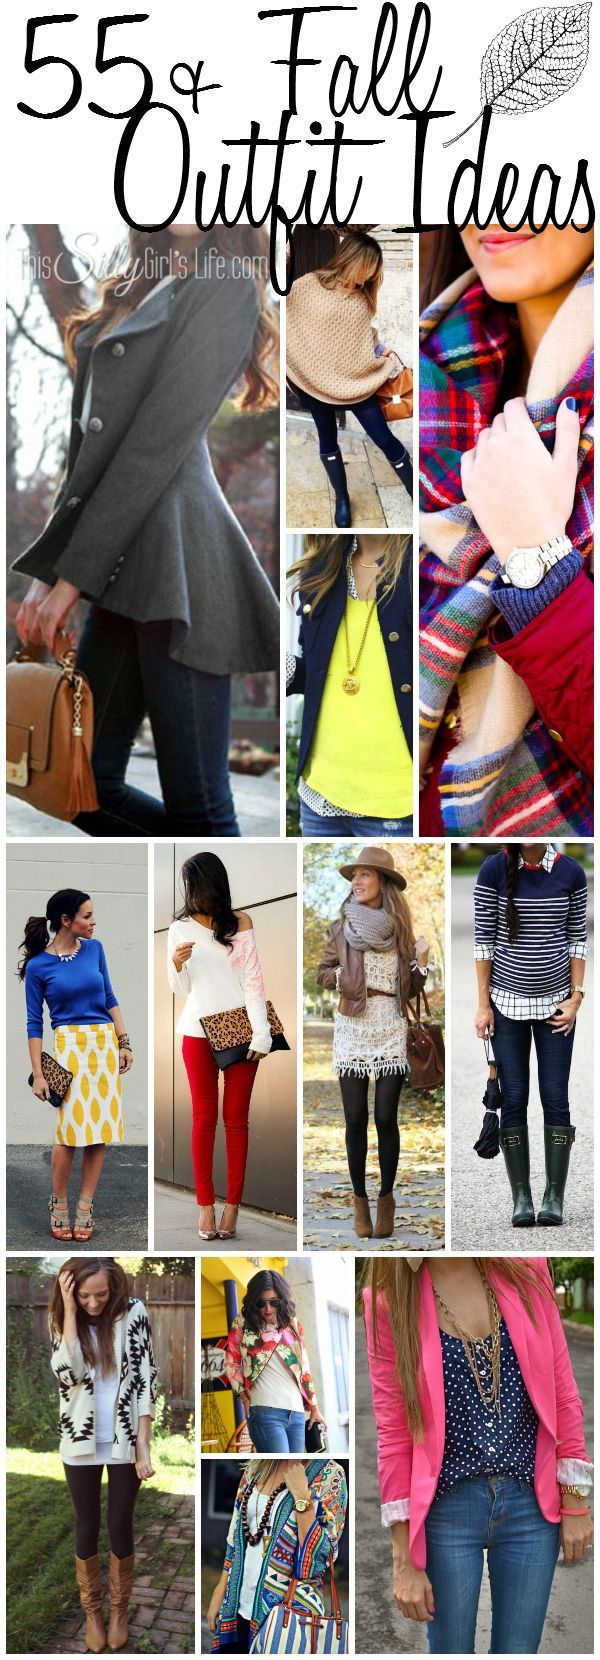 Just in case you need a little MORE reason to go consignment and resale shopping, HowToConsign.com has found this for you: 55+ Fall Outfit Ideas, super cute clothing inspiration for fall!